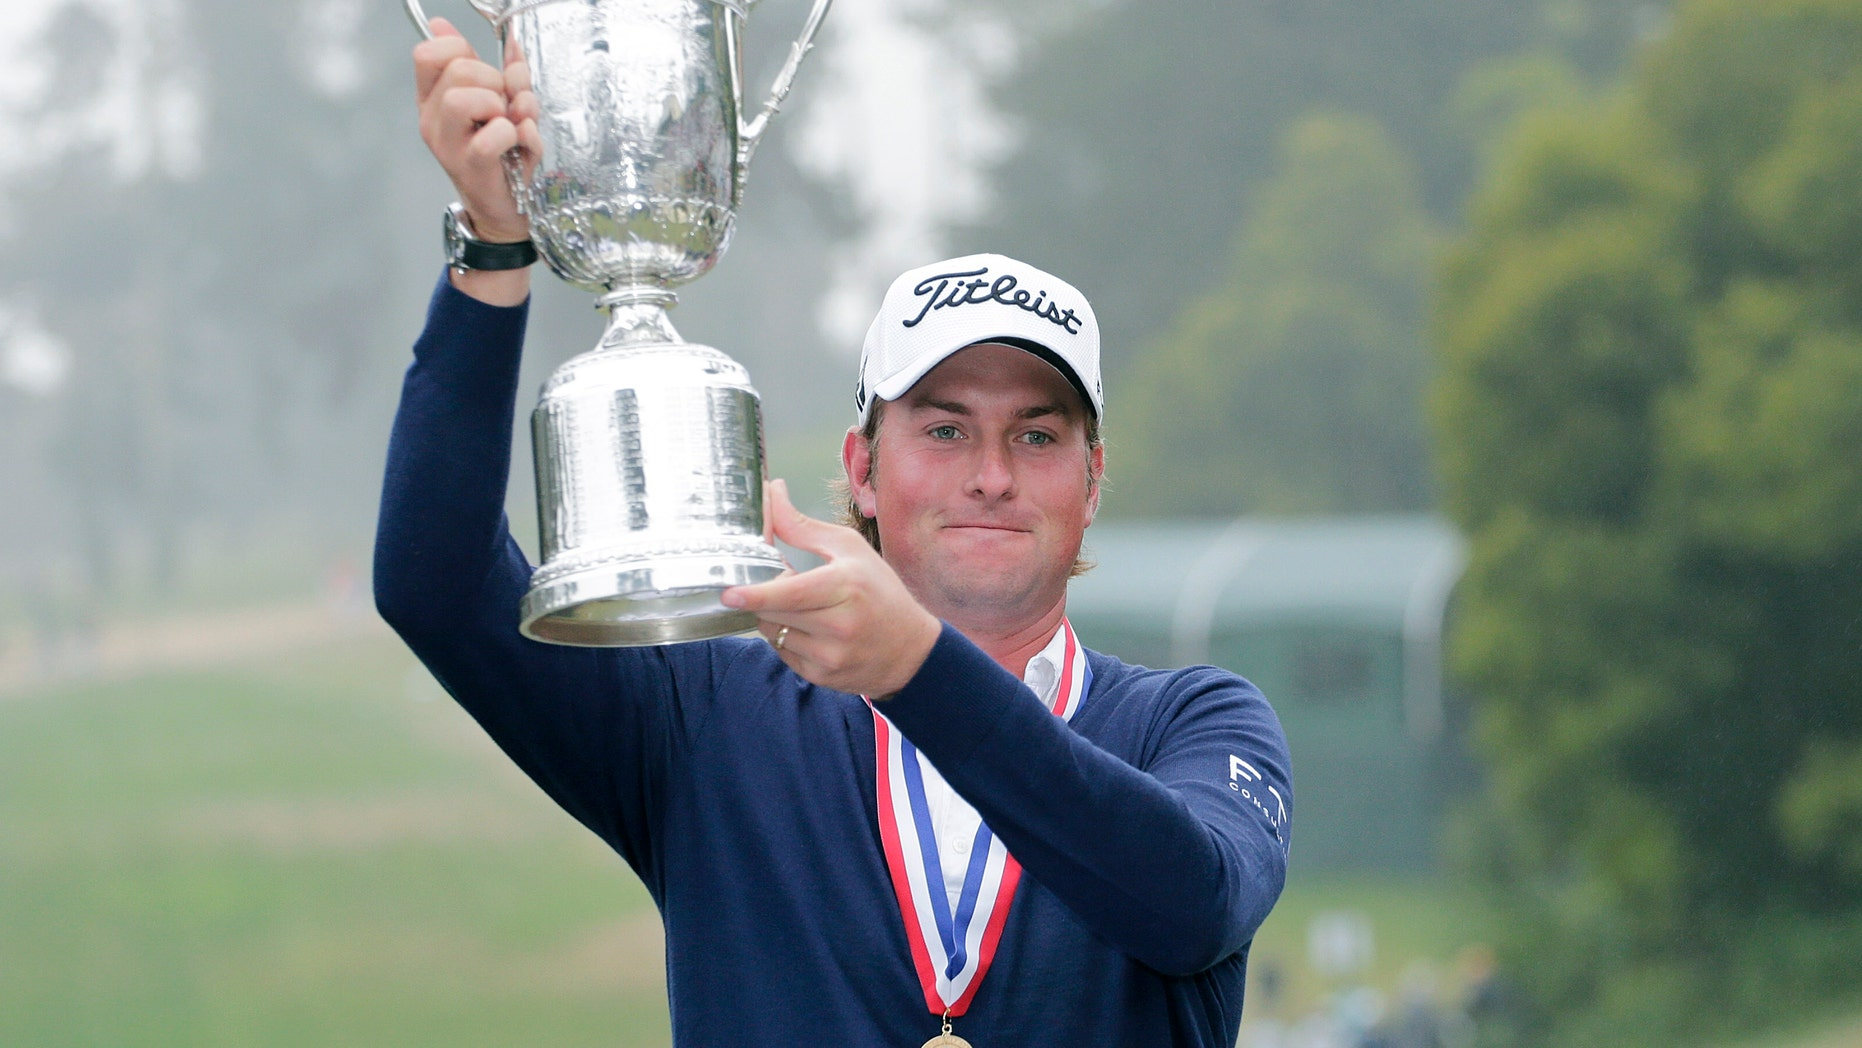 June 17, 2012: Webb Simpson holds up the championship trophy after the U.S. Open Championship golf tournament.